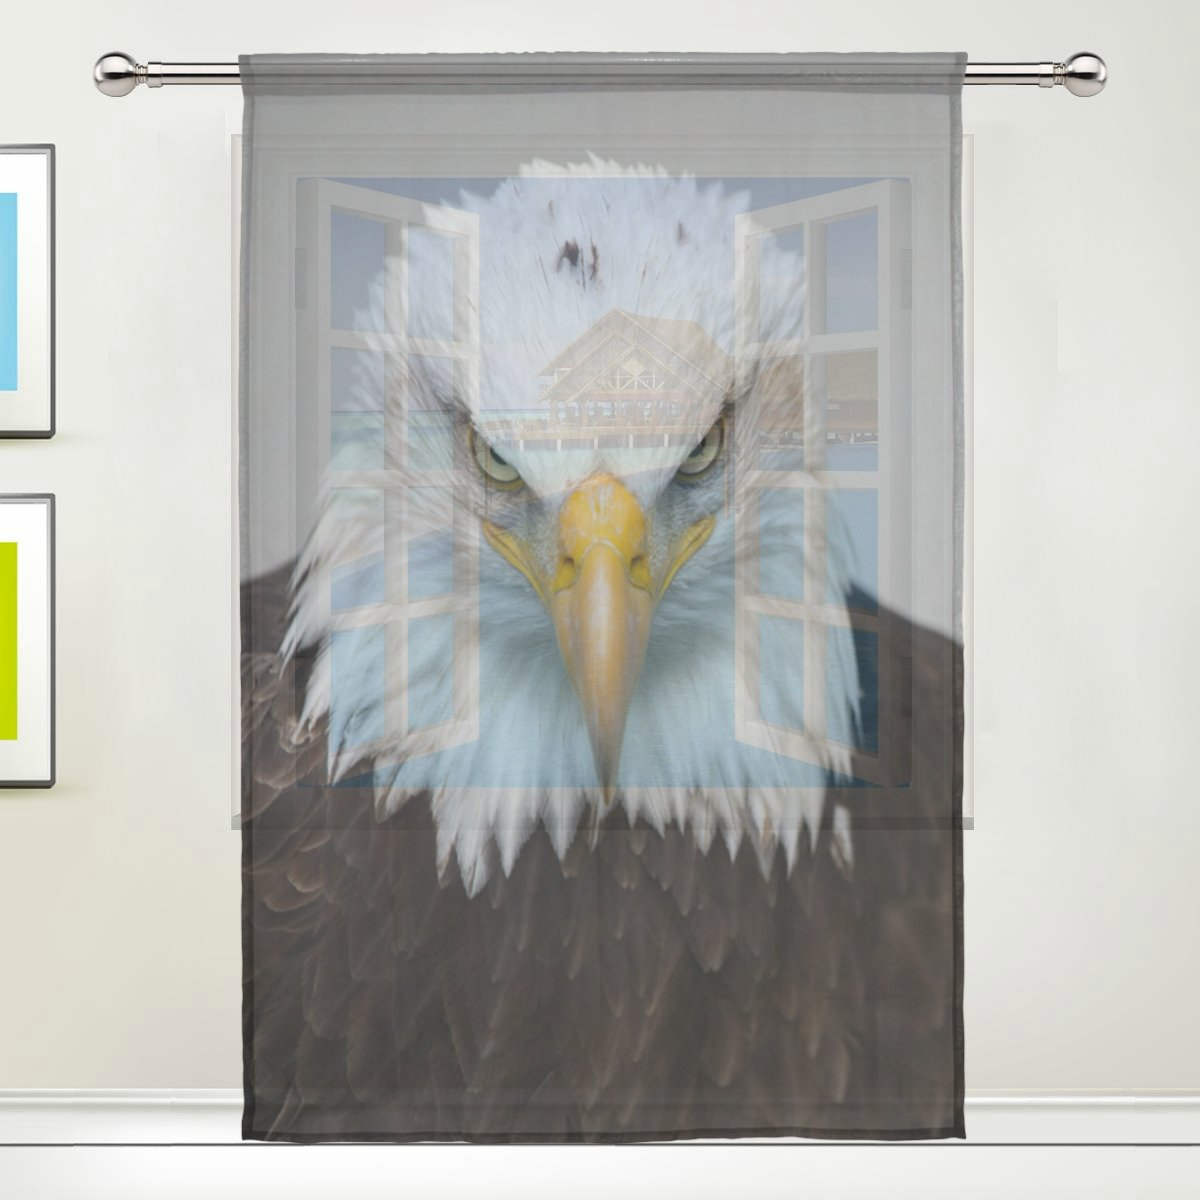 TSWEETHOME Window Treatments Sheer Curtains Draperies with Bald Eagle for Living Room, Bedroom, Nursery Sliding Glass Door Rod Pocket Process by TSWEETHOME